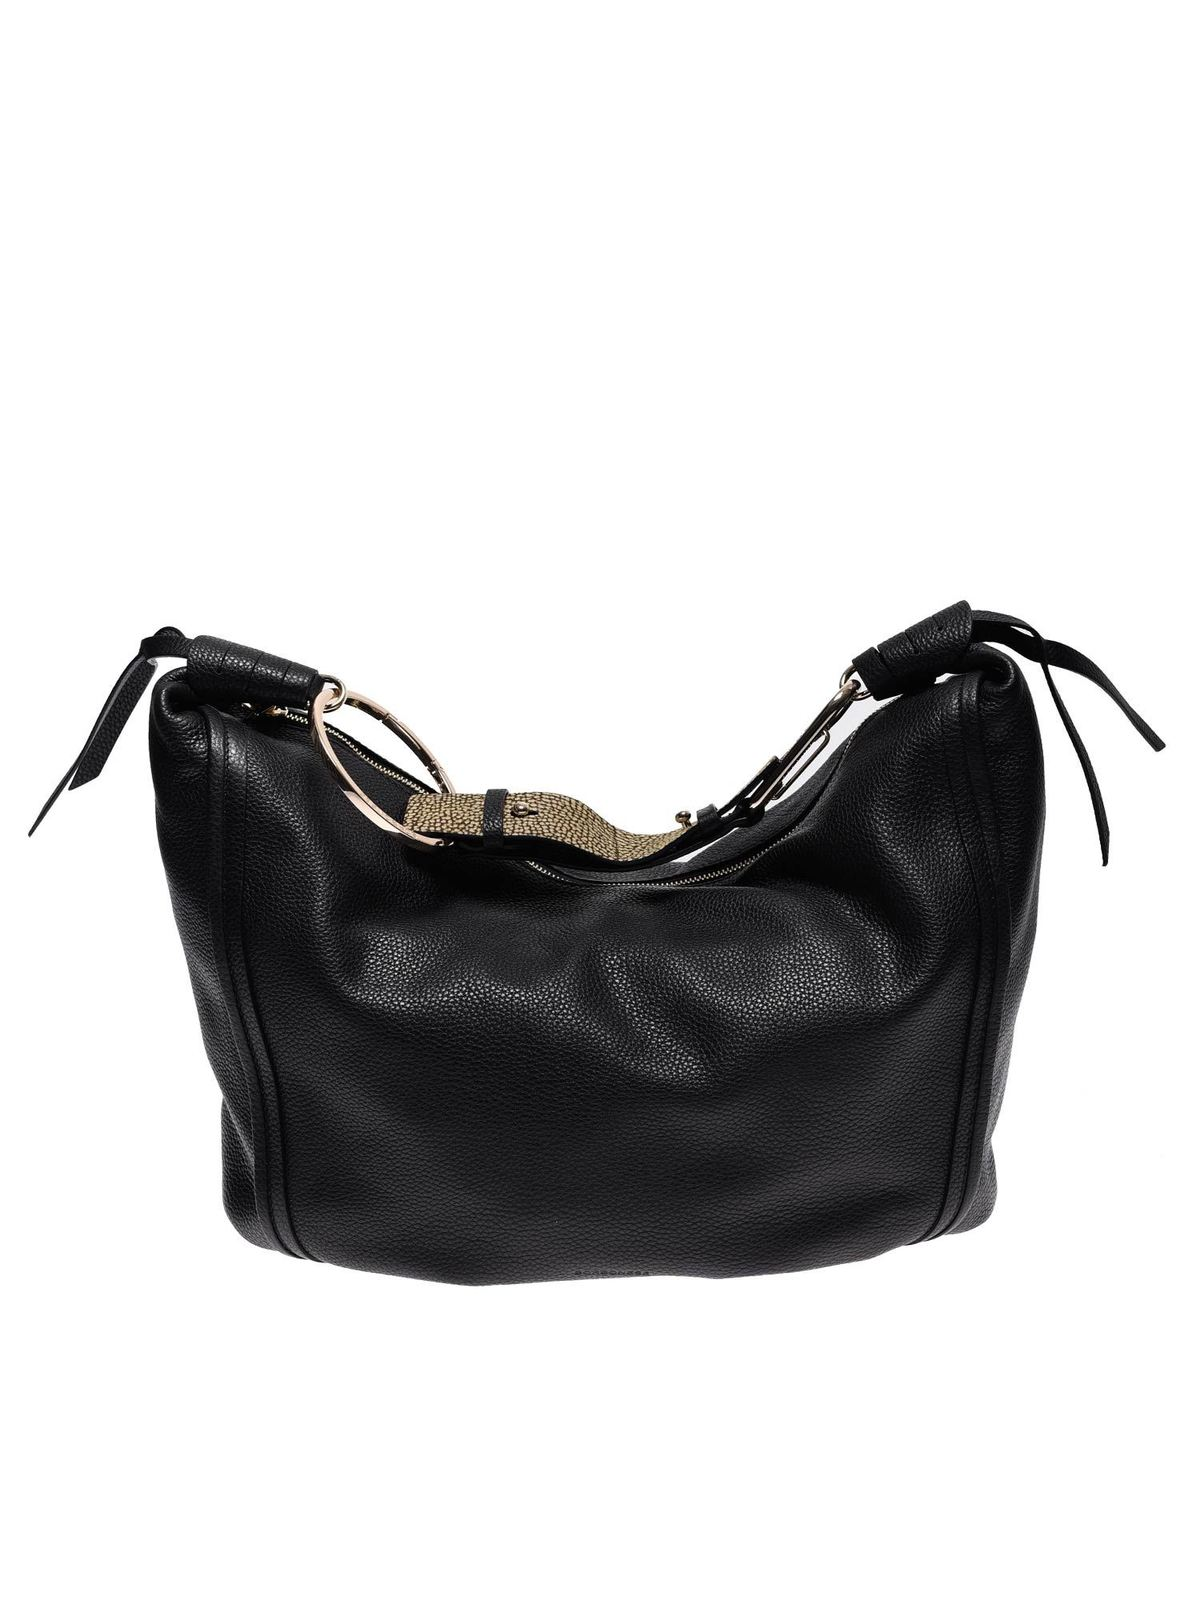 Borbonese LARGE ORBIT BAG IN BLACK